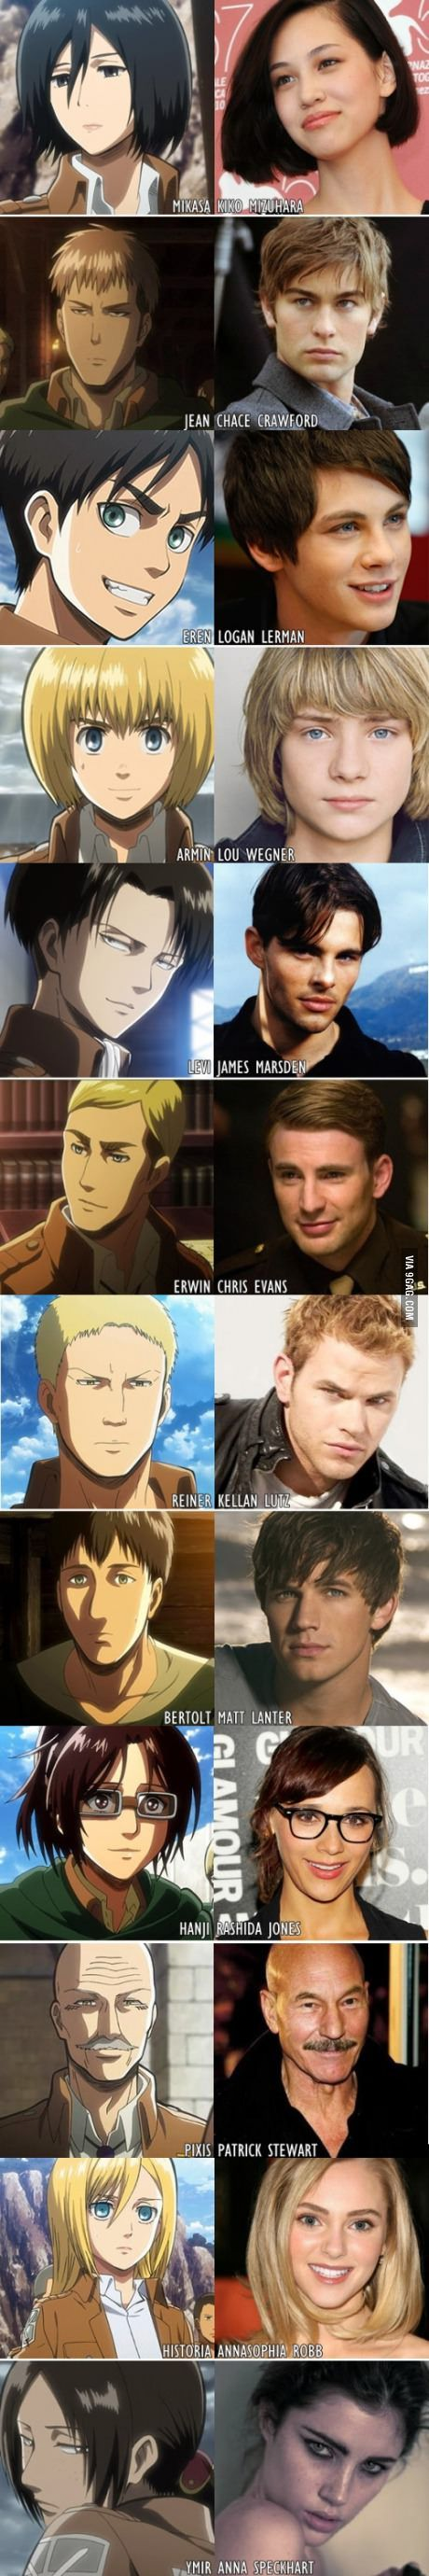 This would have been a better cast, in my opinion that is. But Levi's actor needs a change.